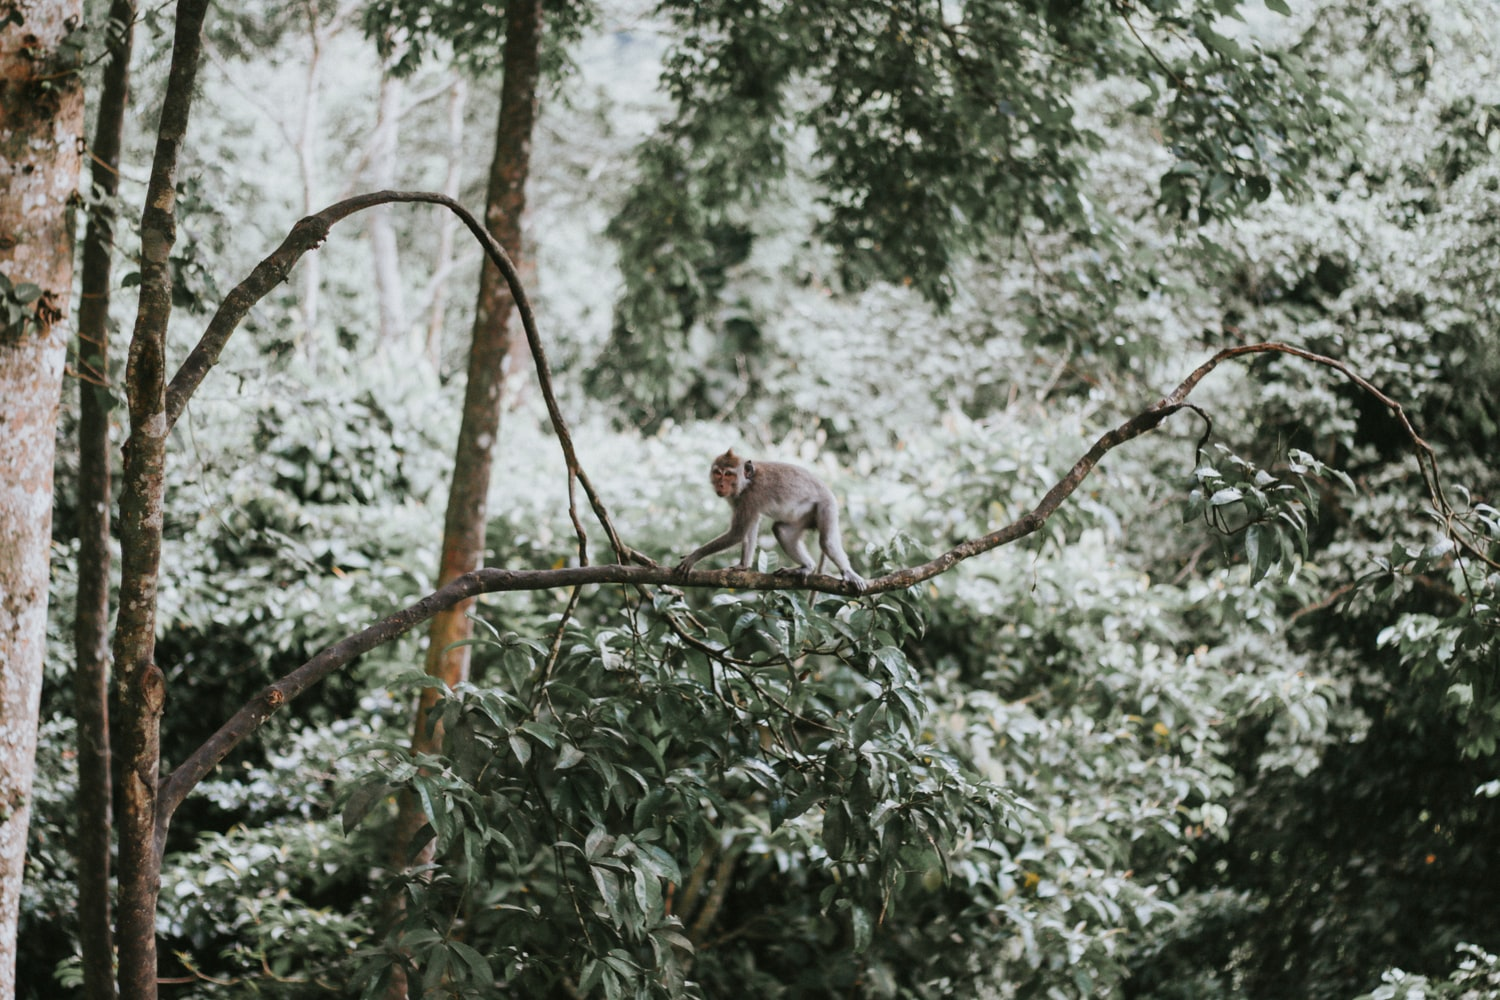 A lone monkey walking on all fours on a think branch in a tree in a forested area.